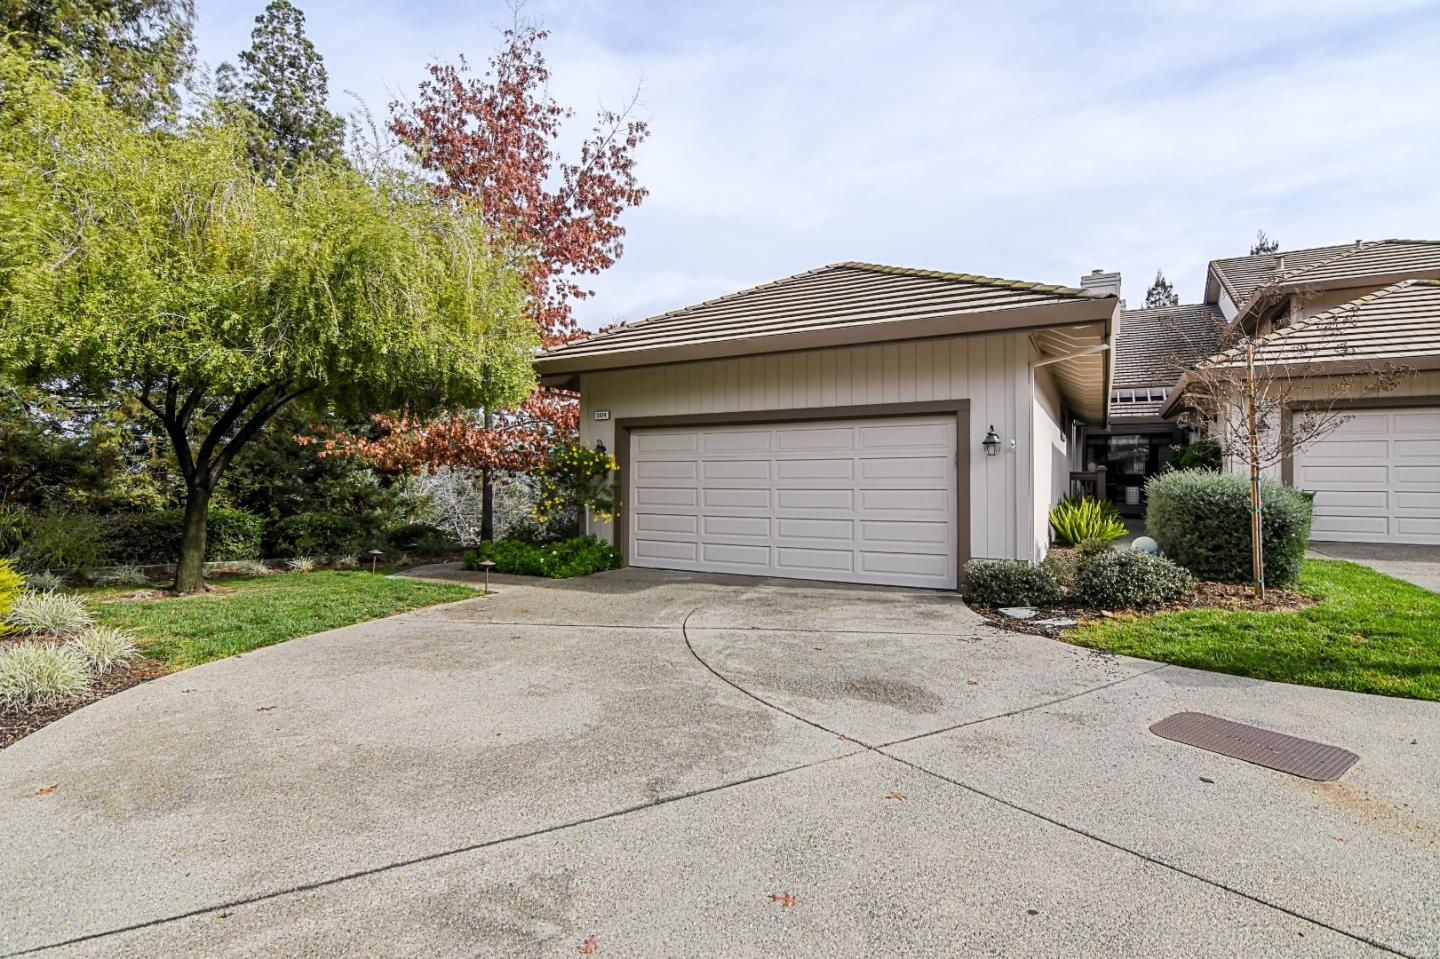 Additional photo for property listing at 5924 Jenny Lind Ct  SAN JOSE, CALIFORNIA 95120